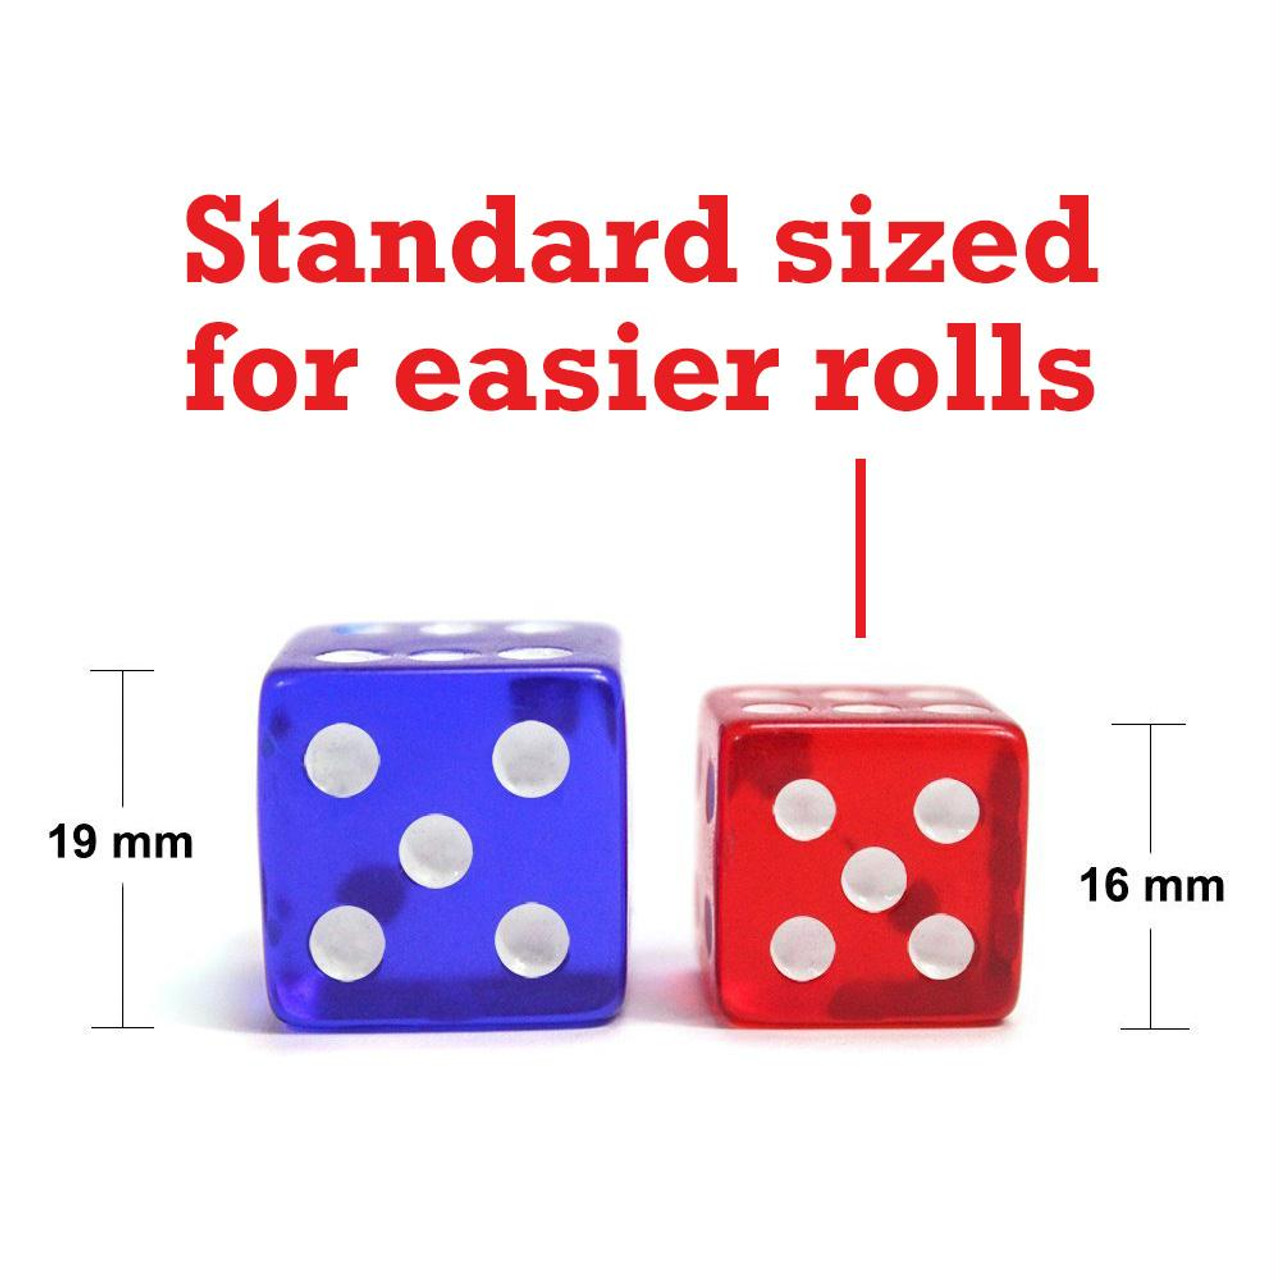 Set of 100 Orange Translucent 16mm 6-Sided d6 Dice for Casino Table Board Games